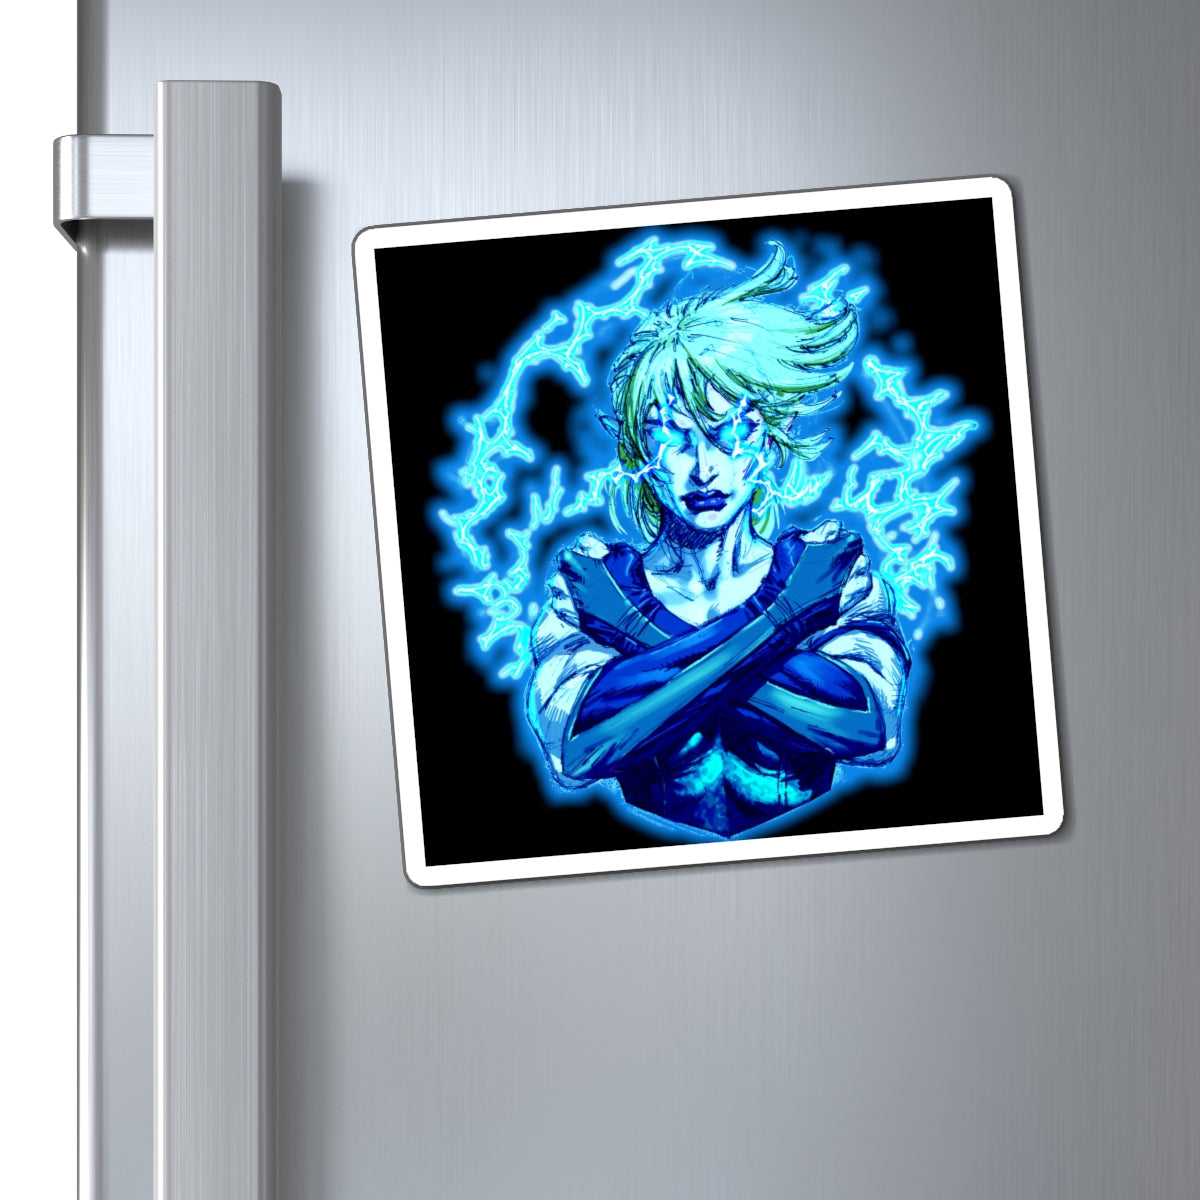 ARISTAR glows blue magnet